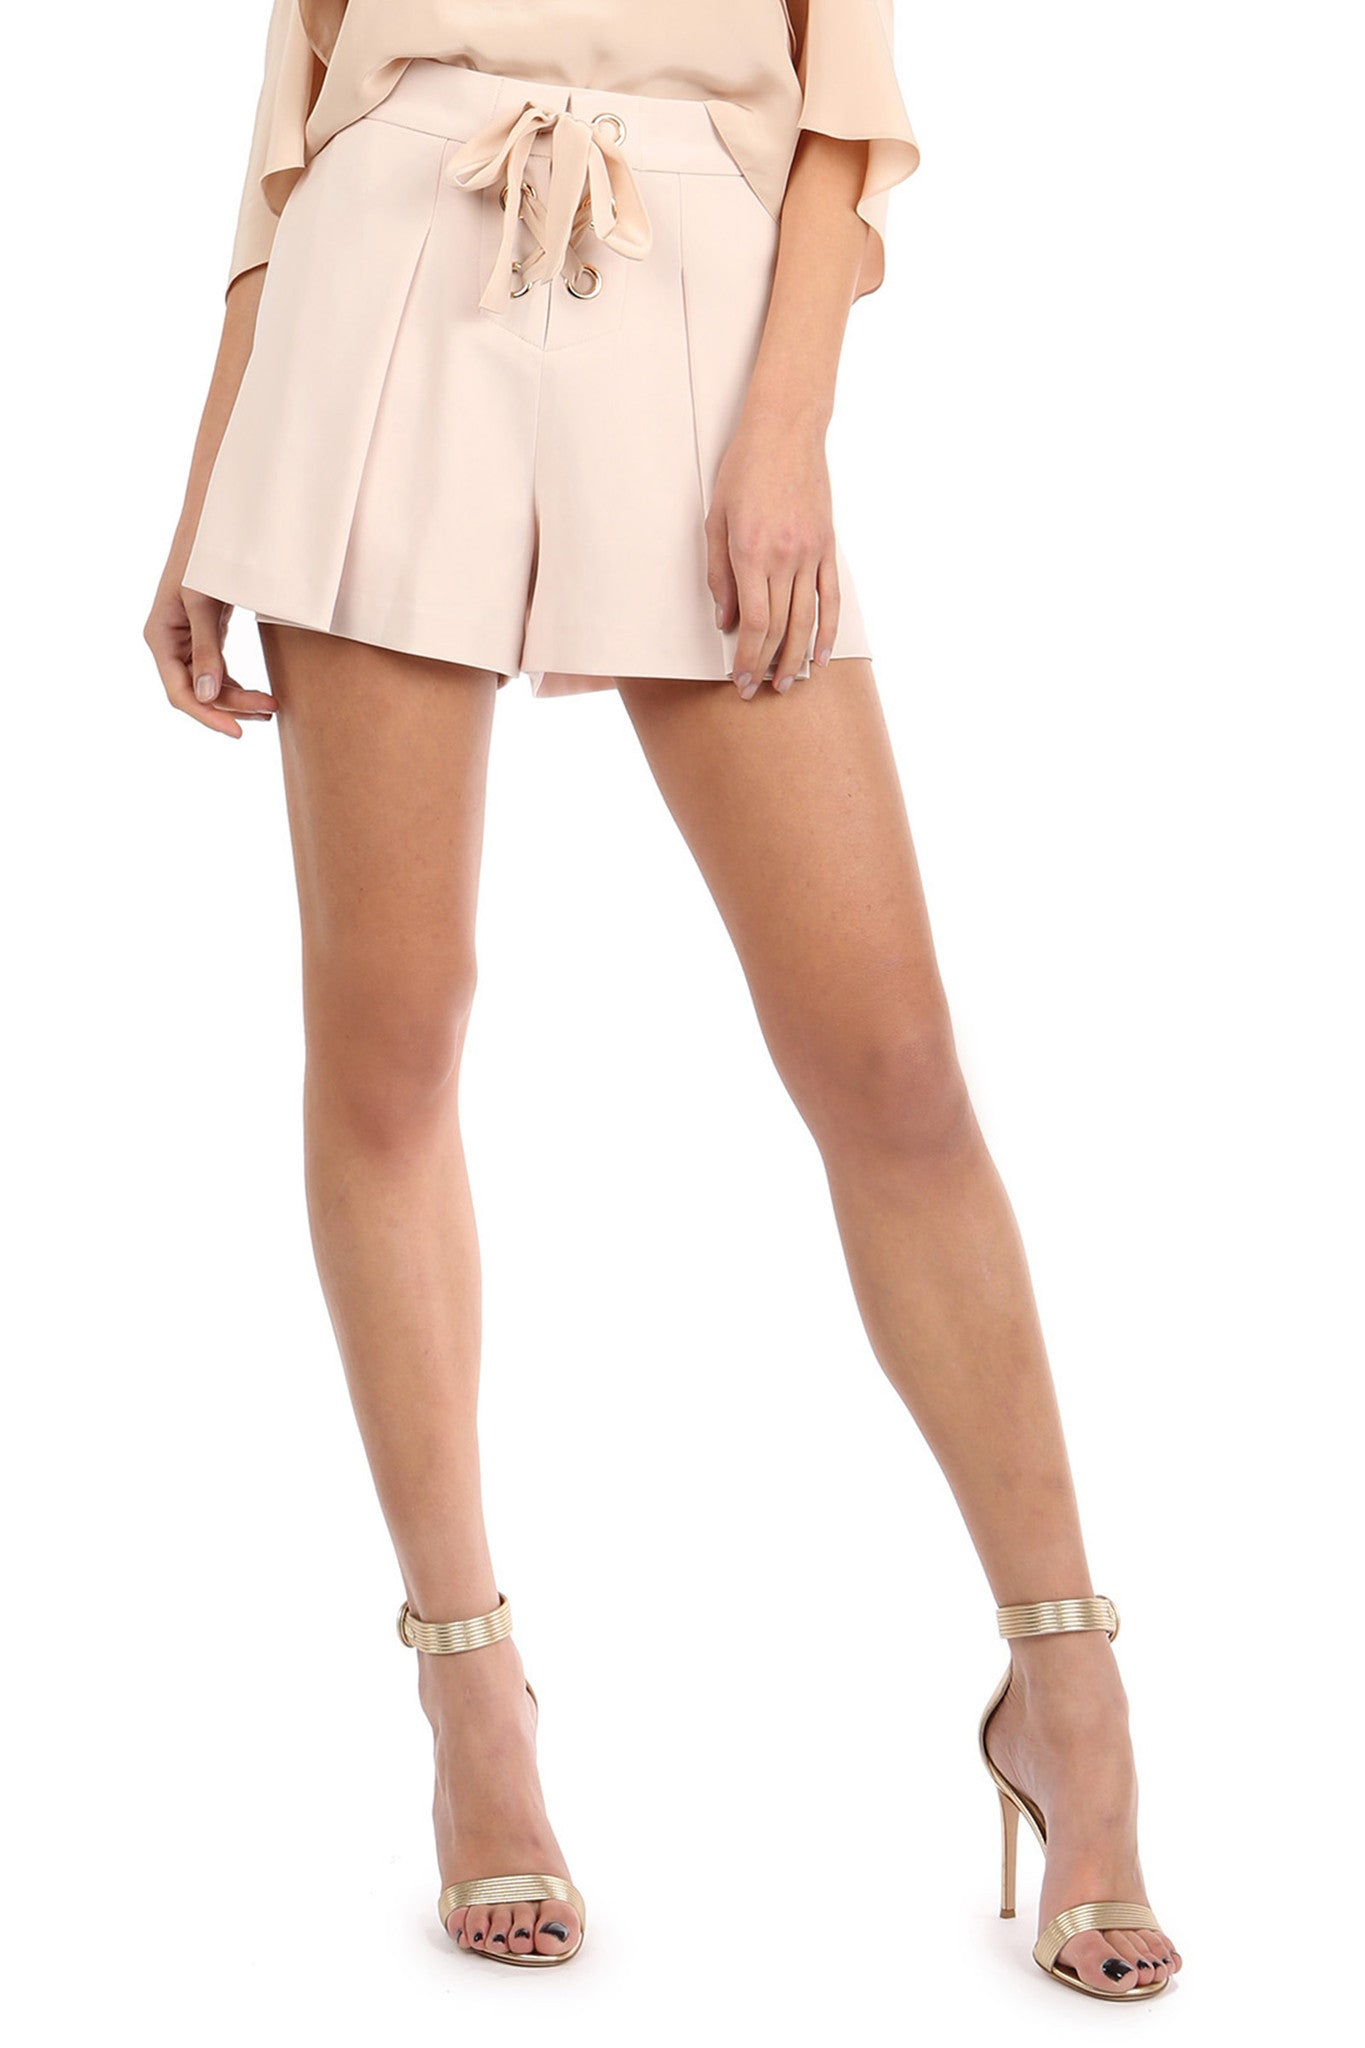 Jay Godfrey Sand Pleated Shorts - Front View